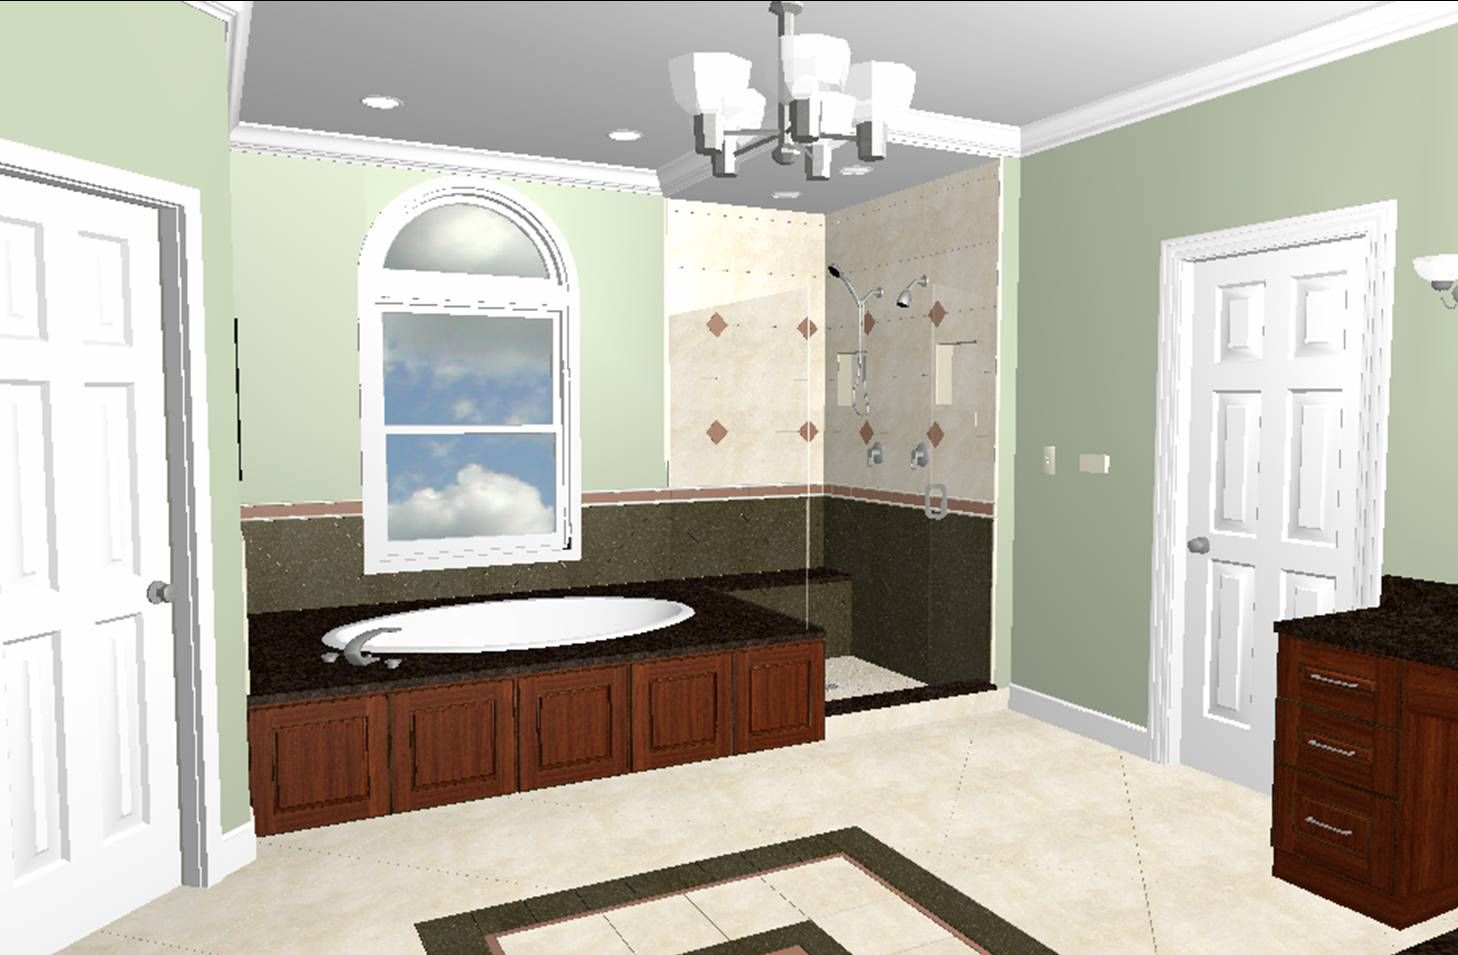 Bathroom rendering created in Chief Architect by J.S ...